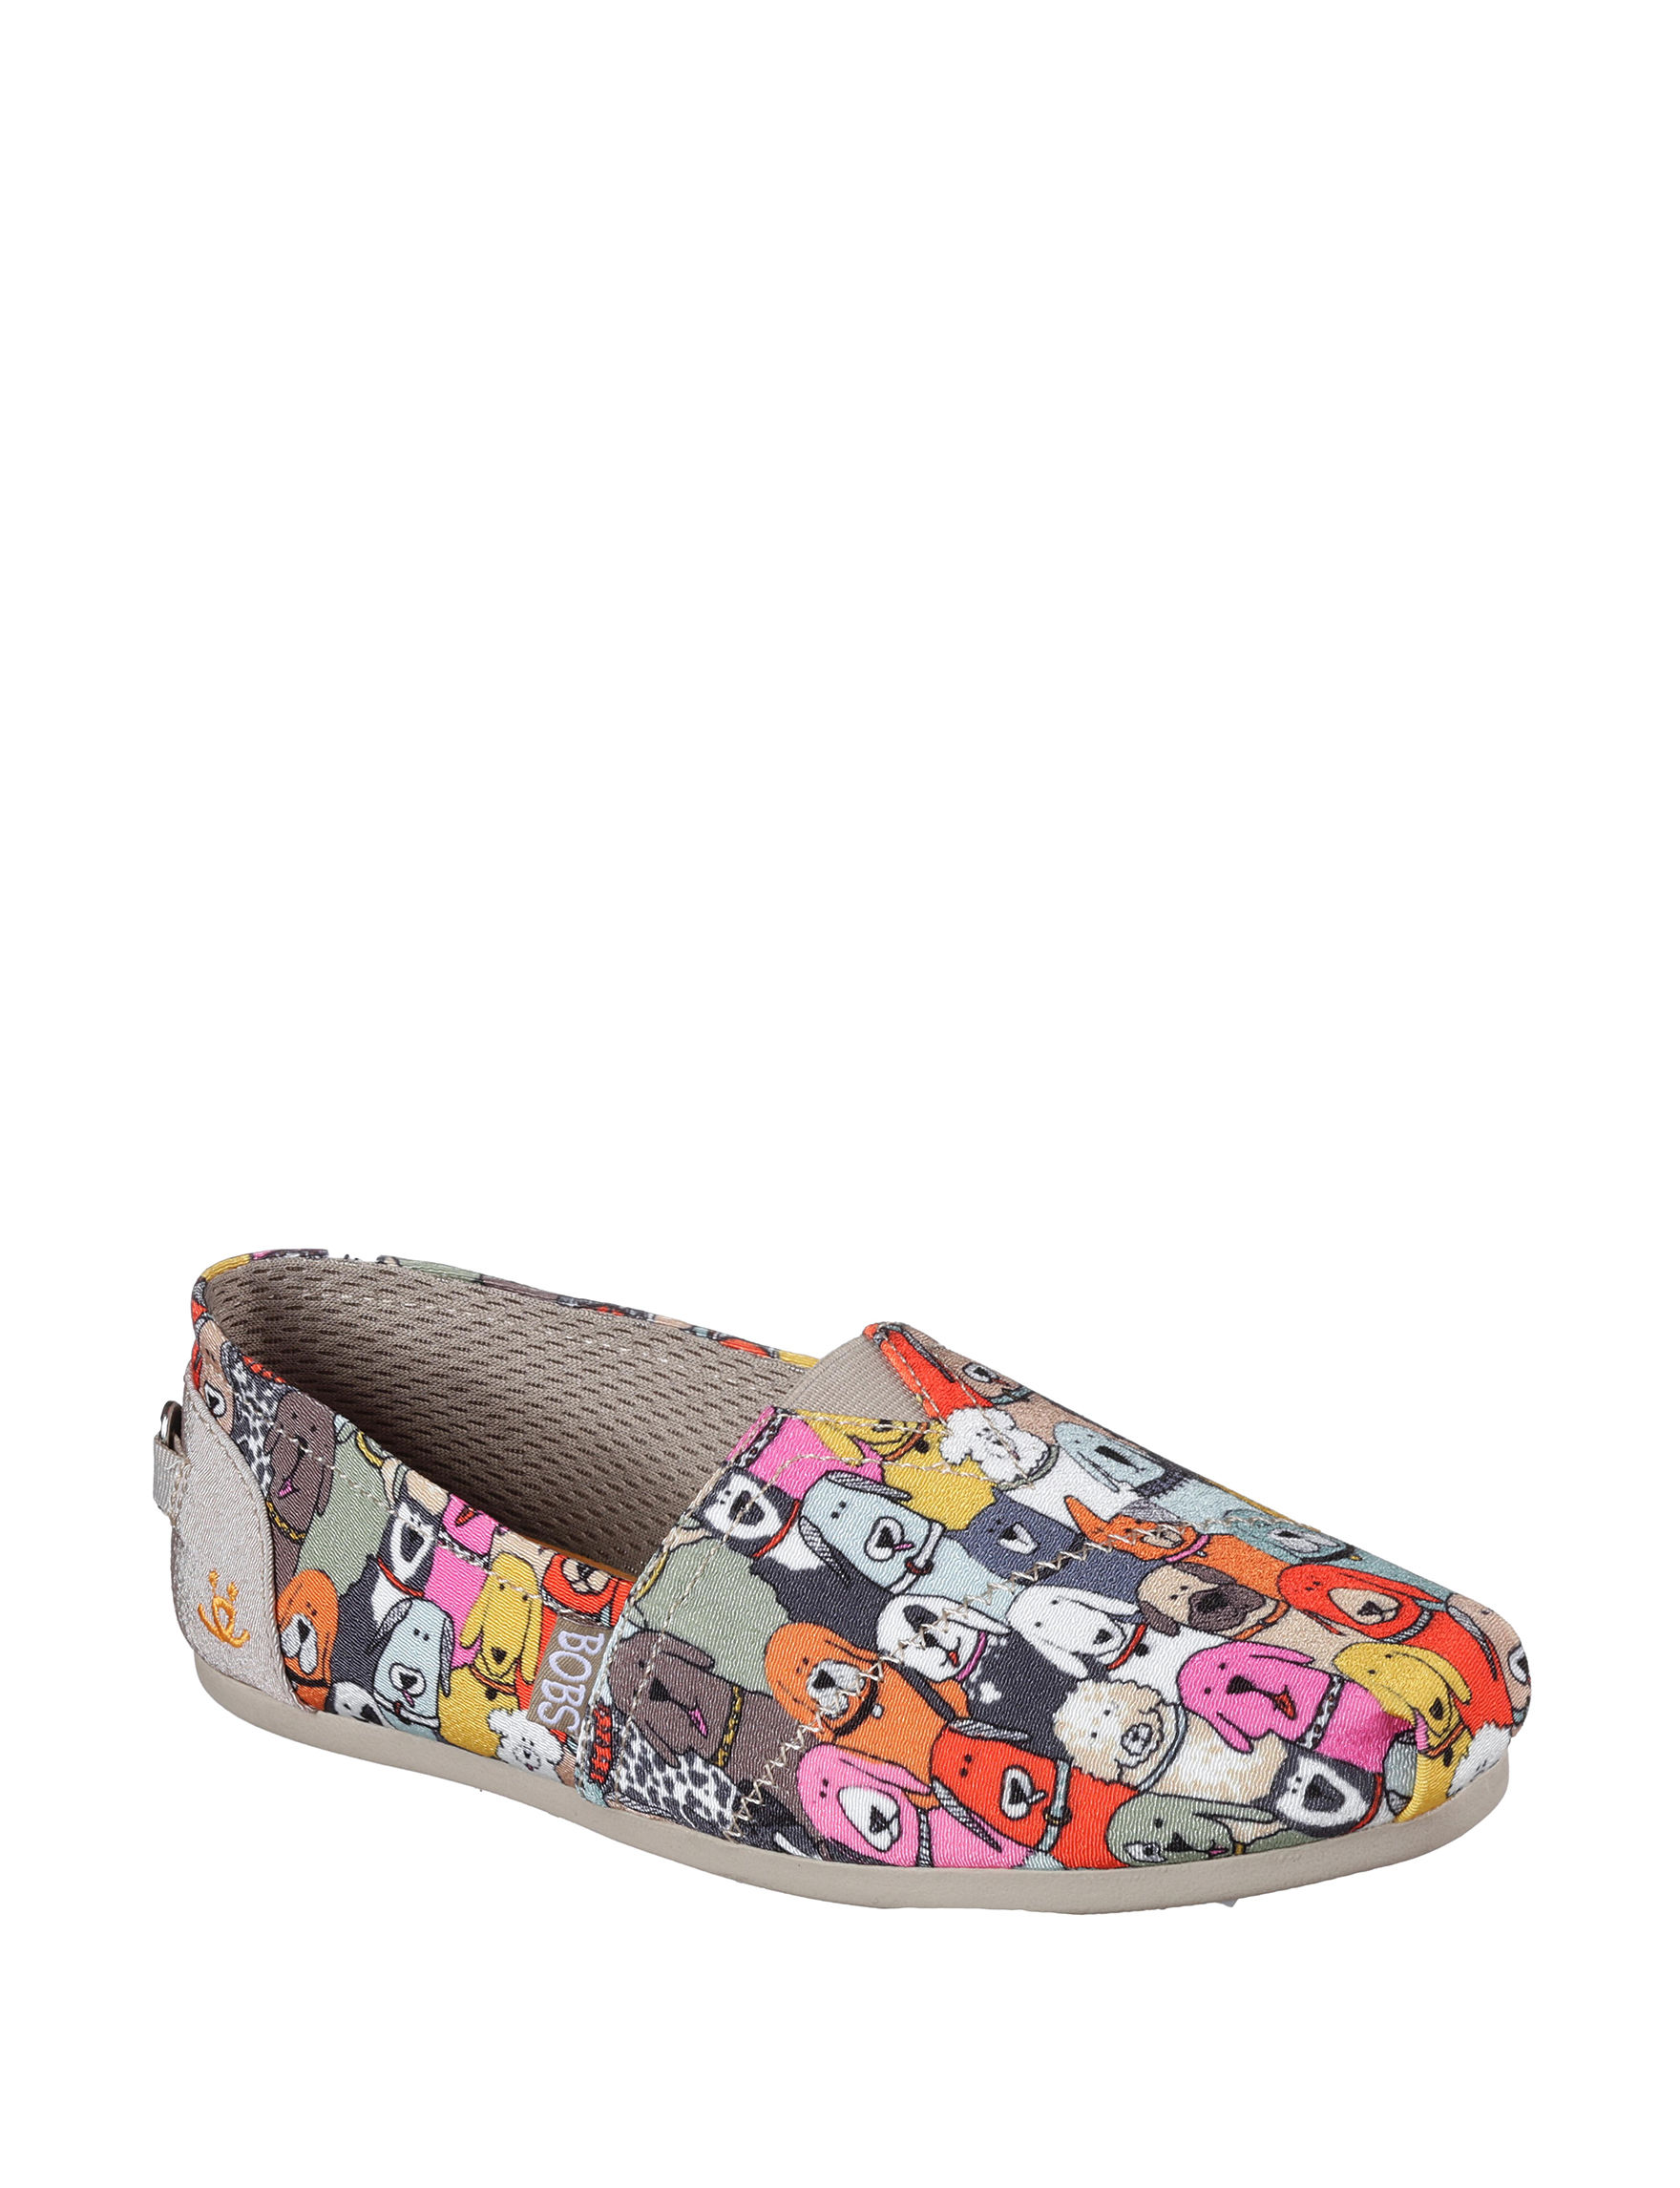 2e139d623df ... UPC 190872296752 product image for Skechers BOBS Plush Wag Party Shoes  - Multi - 9 ...